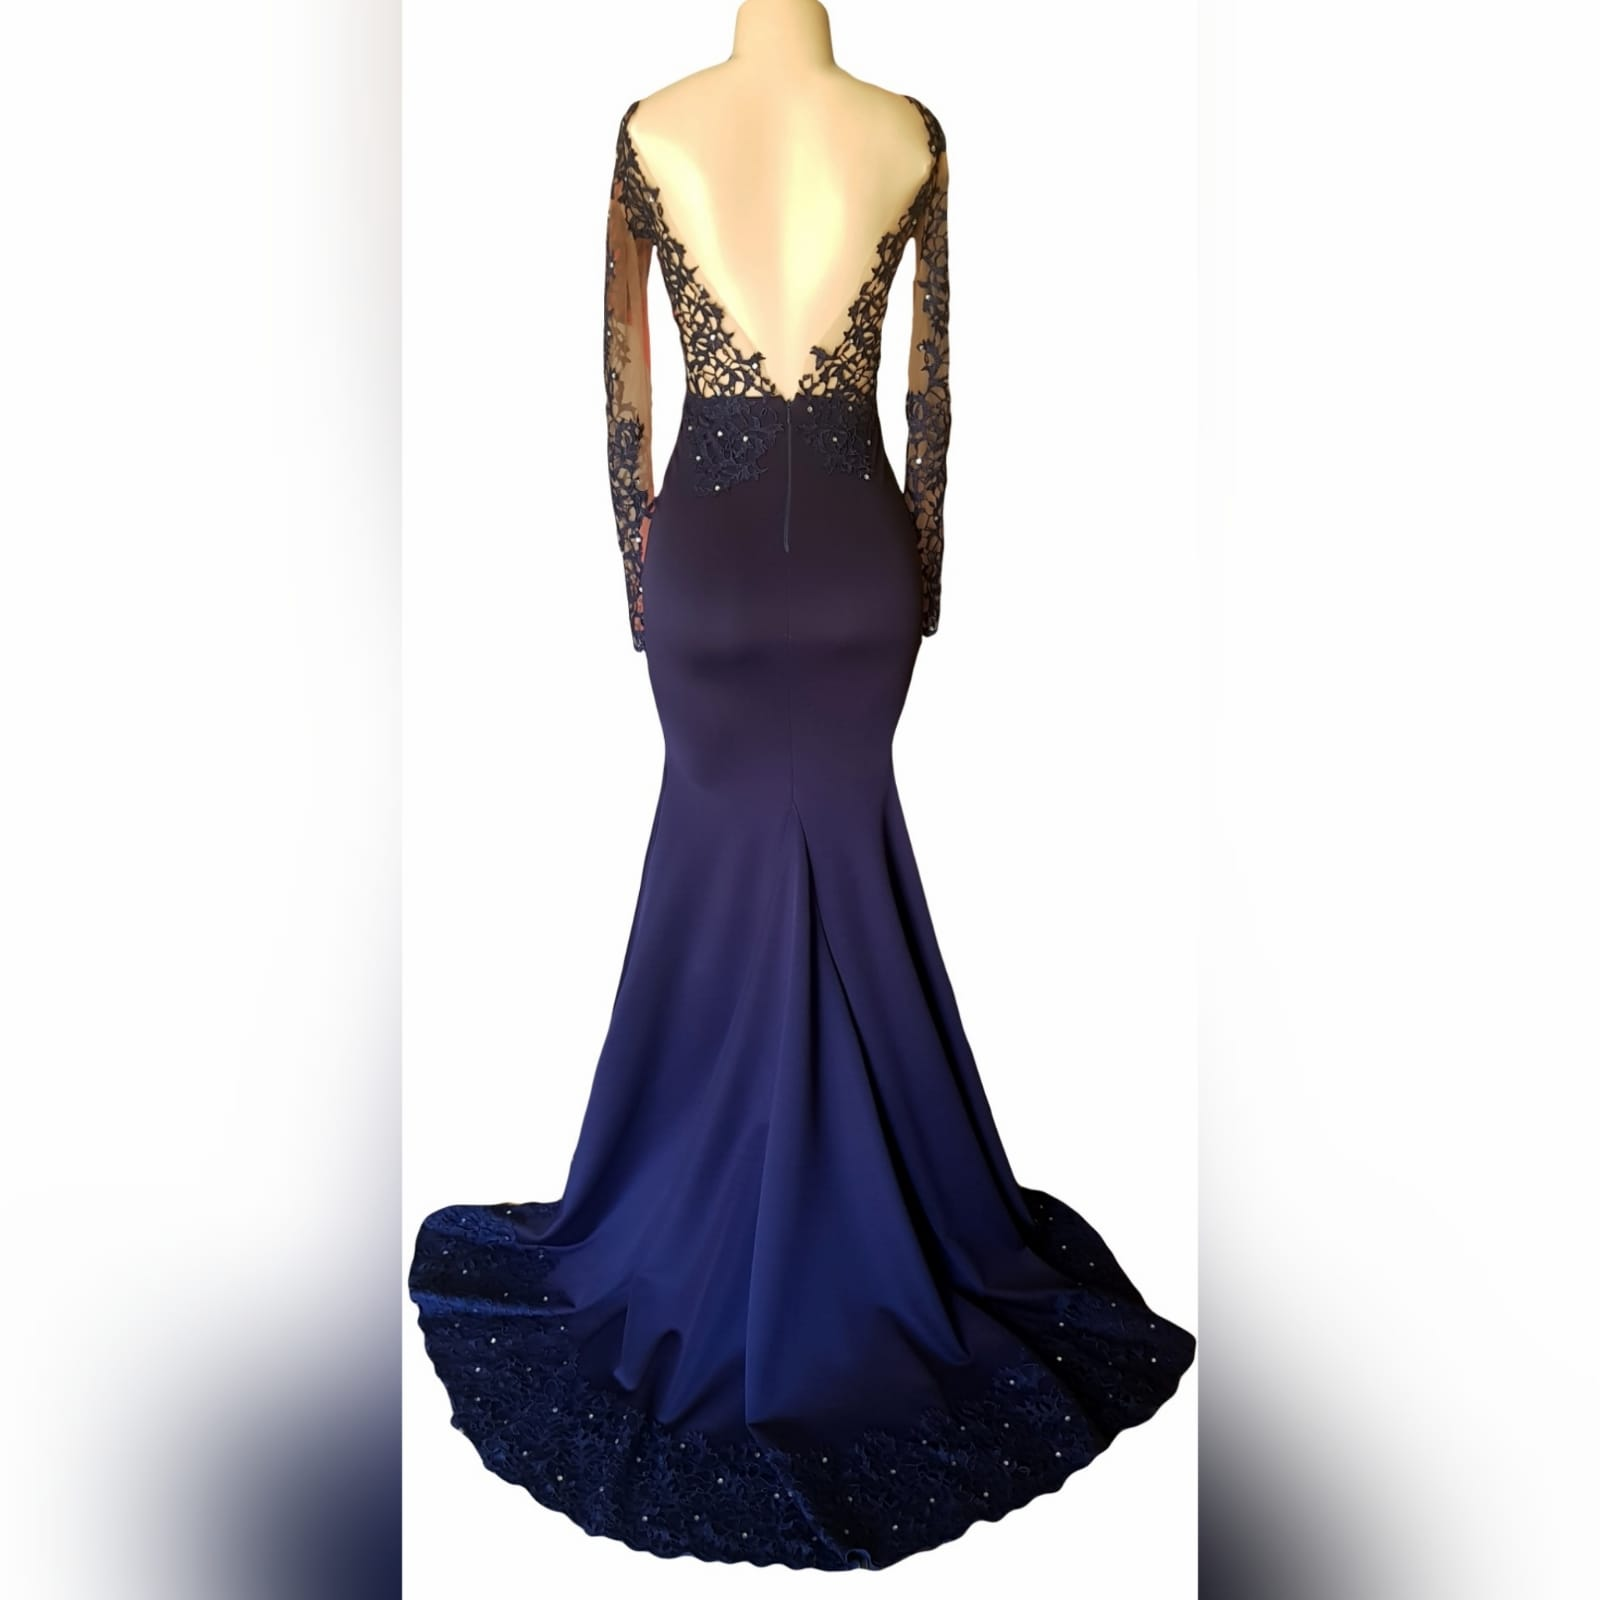 "Custom-designed navy blue mermaid prom dress 10 <em>""a girl should be two things: who and what she wants. ""</em> <em>coco chanel</em> looking stunning on her prom night, she wore a custom-designed and made the dress to fit her like a glove. This navy blue mermaid prom dress has a sheer lace bodice and sleeves, a lace border and scattered silver beads. A dramatic train and a v open back."